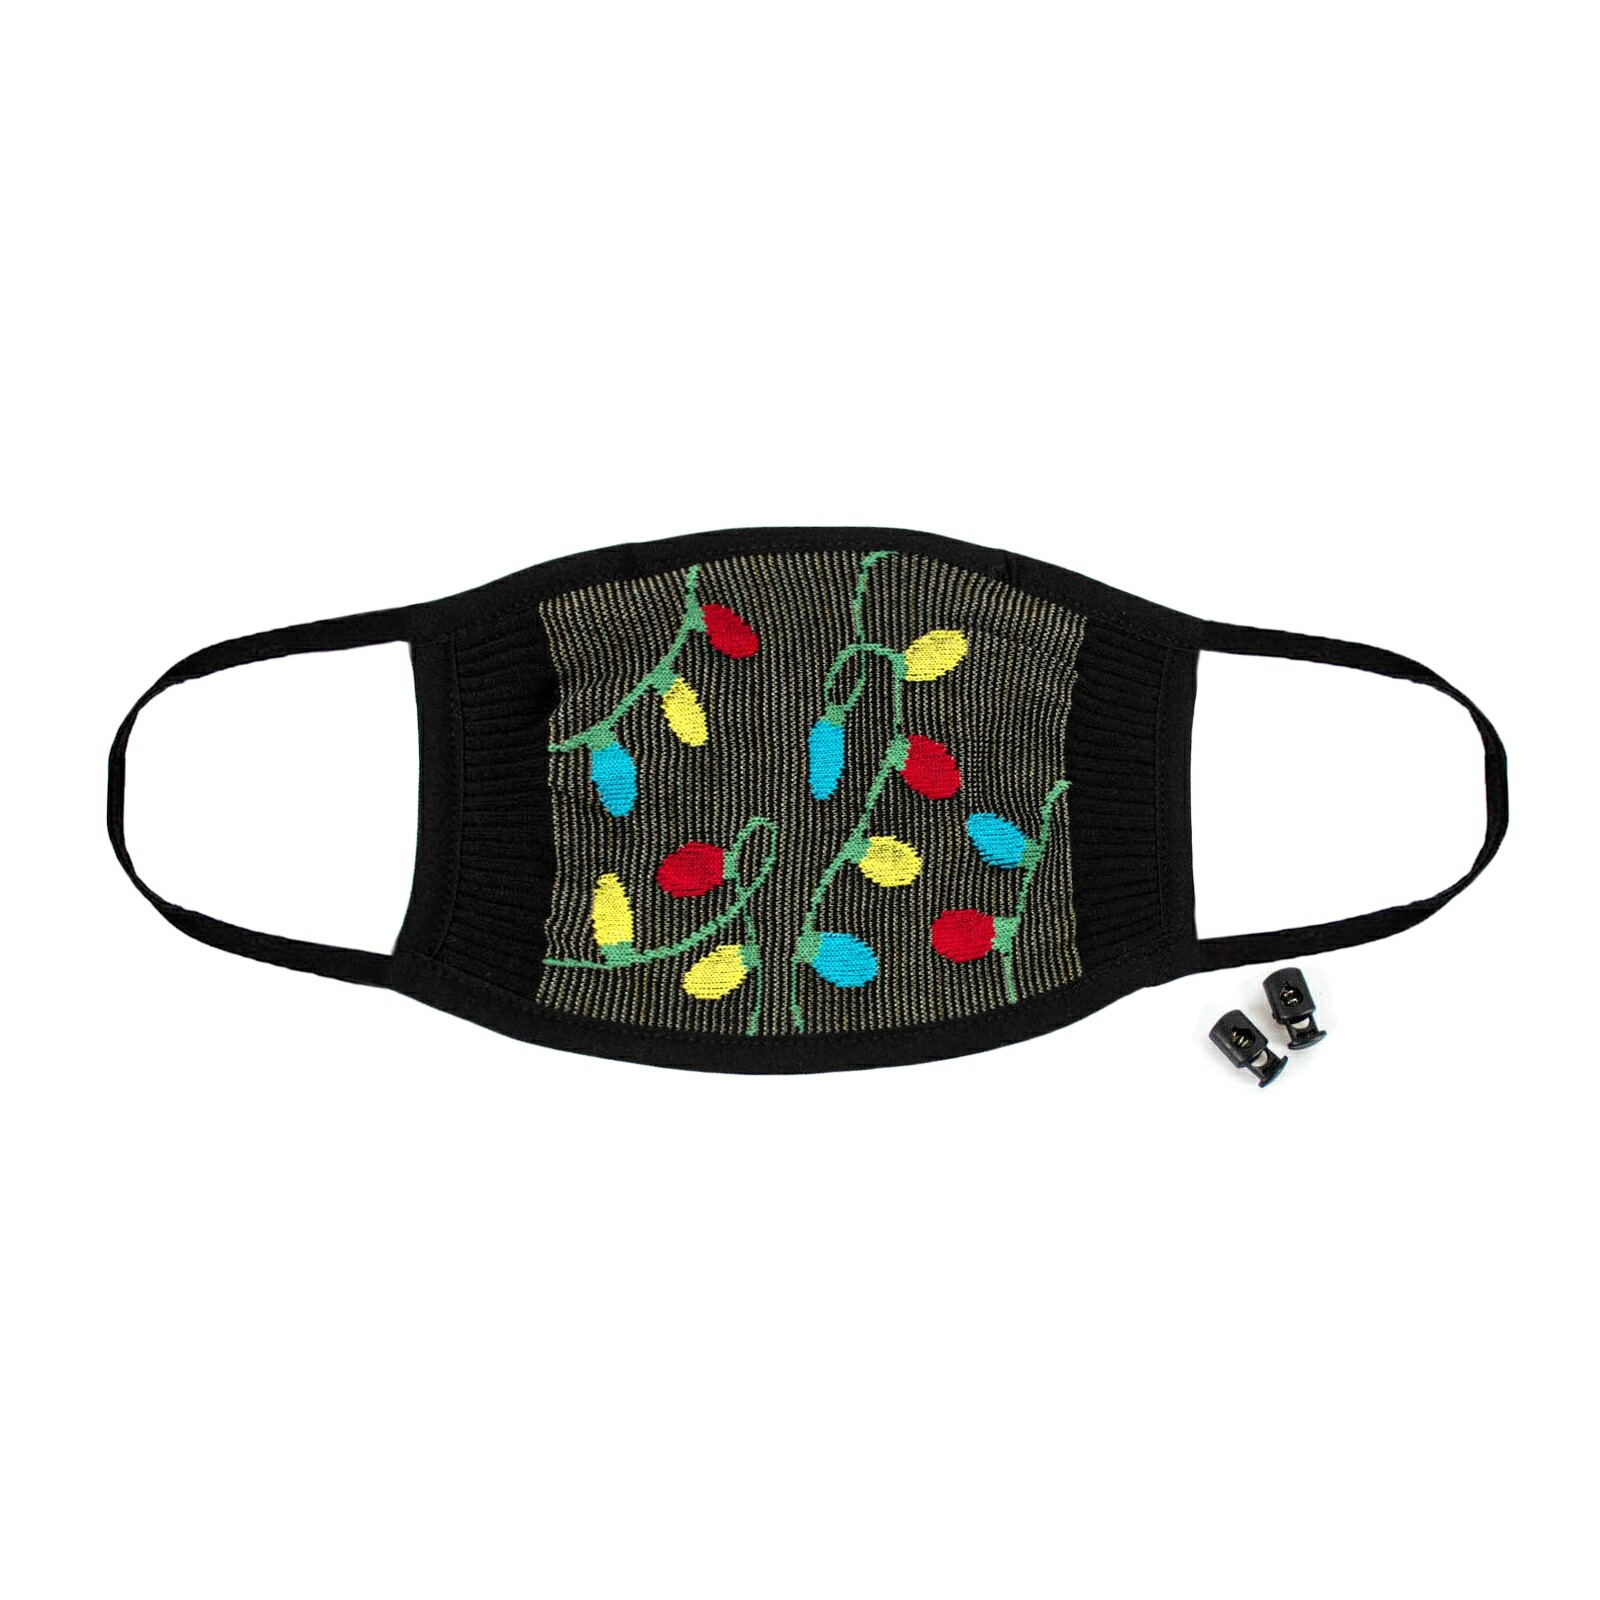 Tangled Lights - Christmas Holiday Face Masks - Unisex in Black